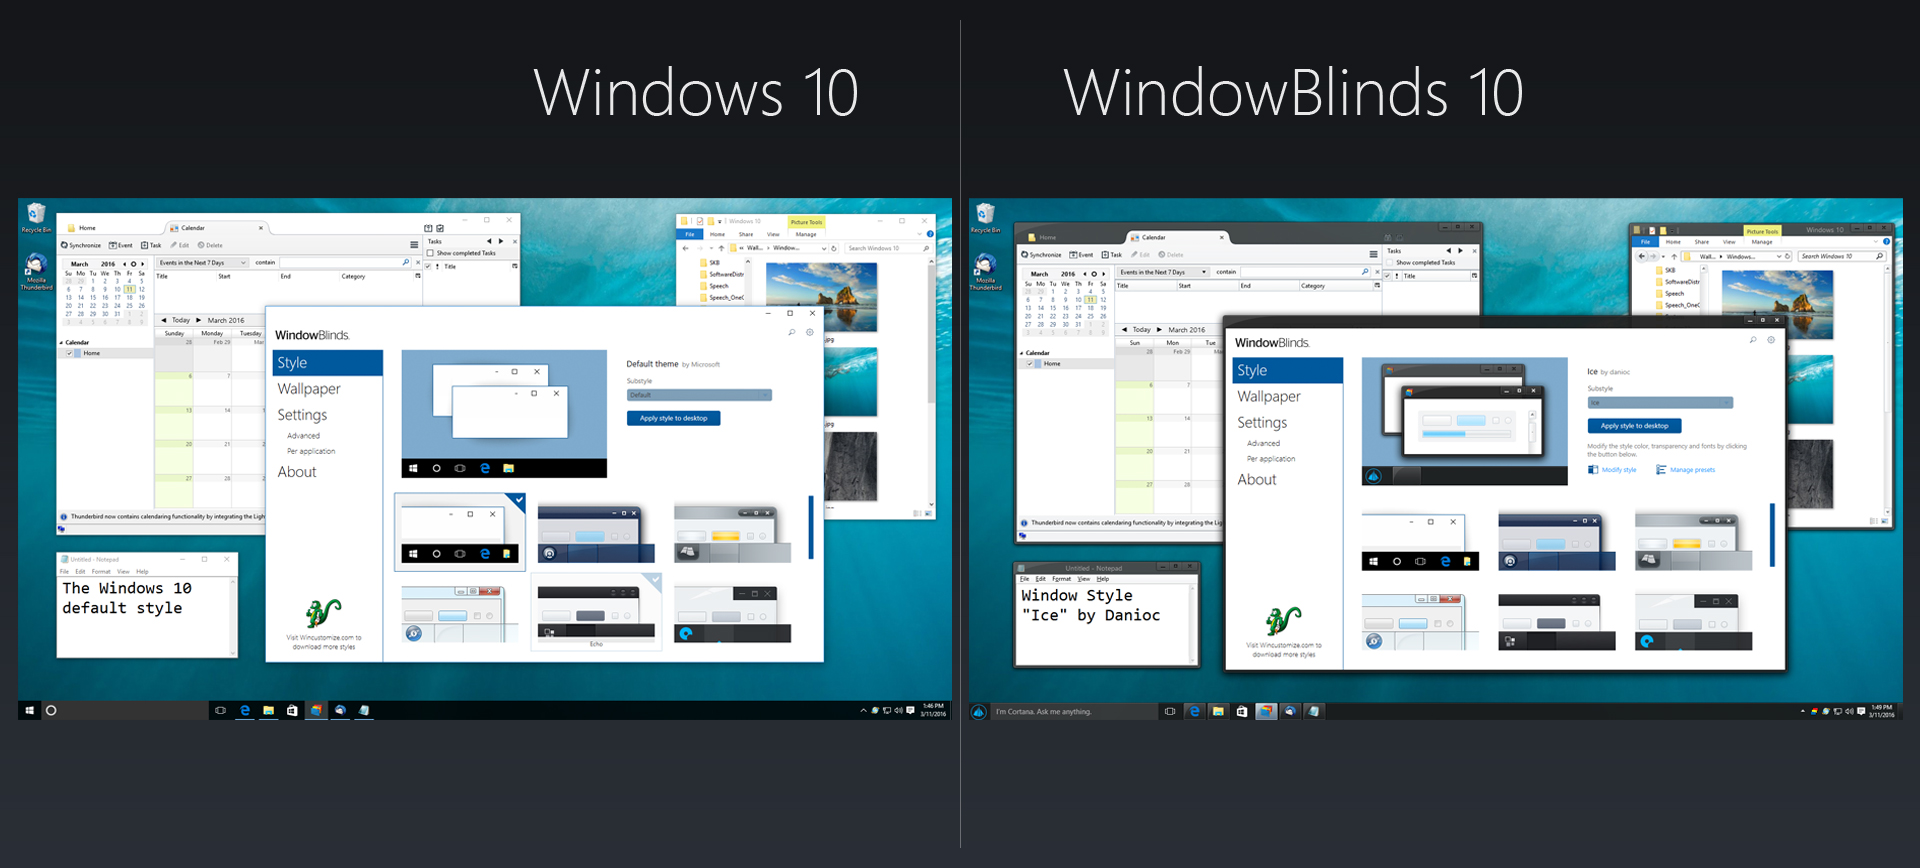 Stardock Animated Wallpaper Windowblinds Software From Stardock